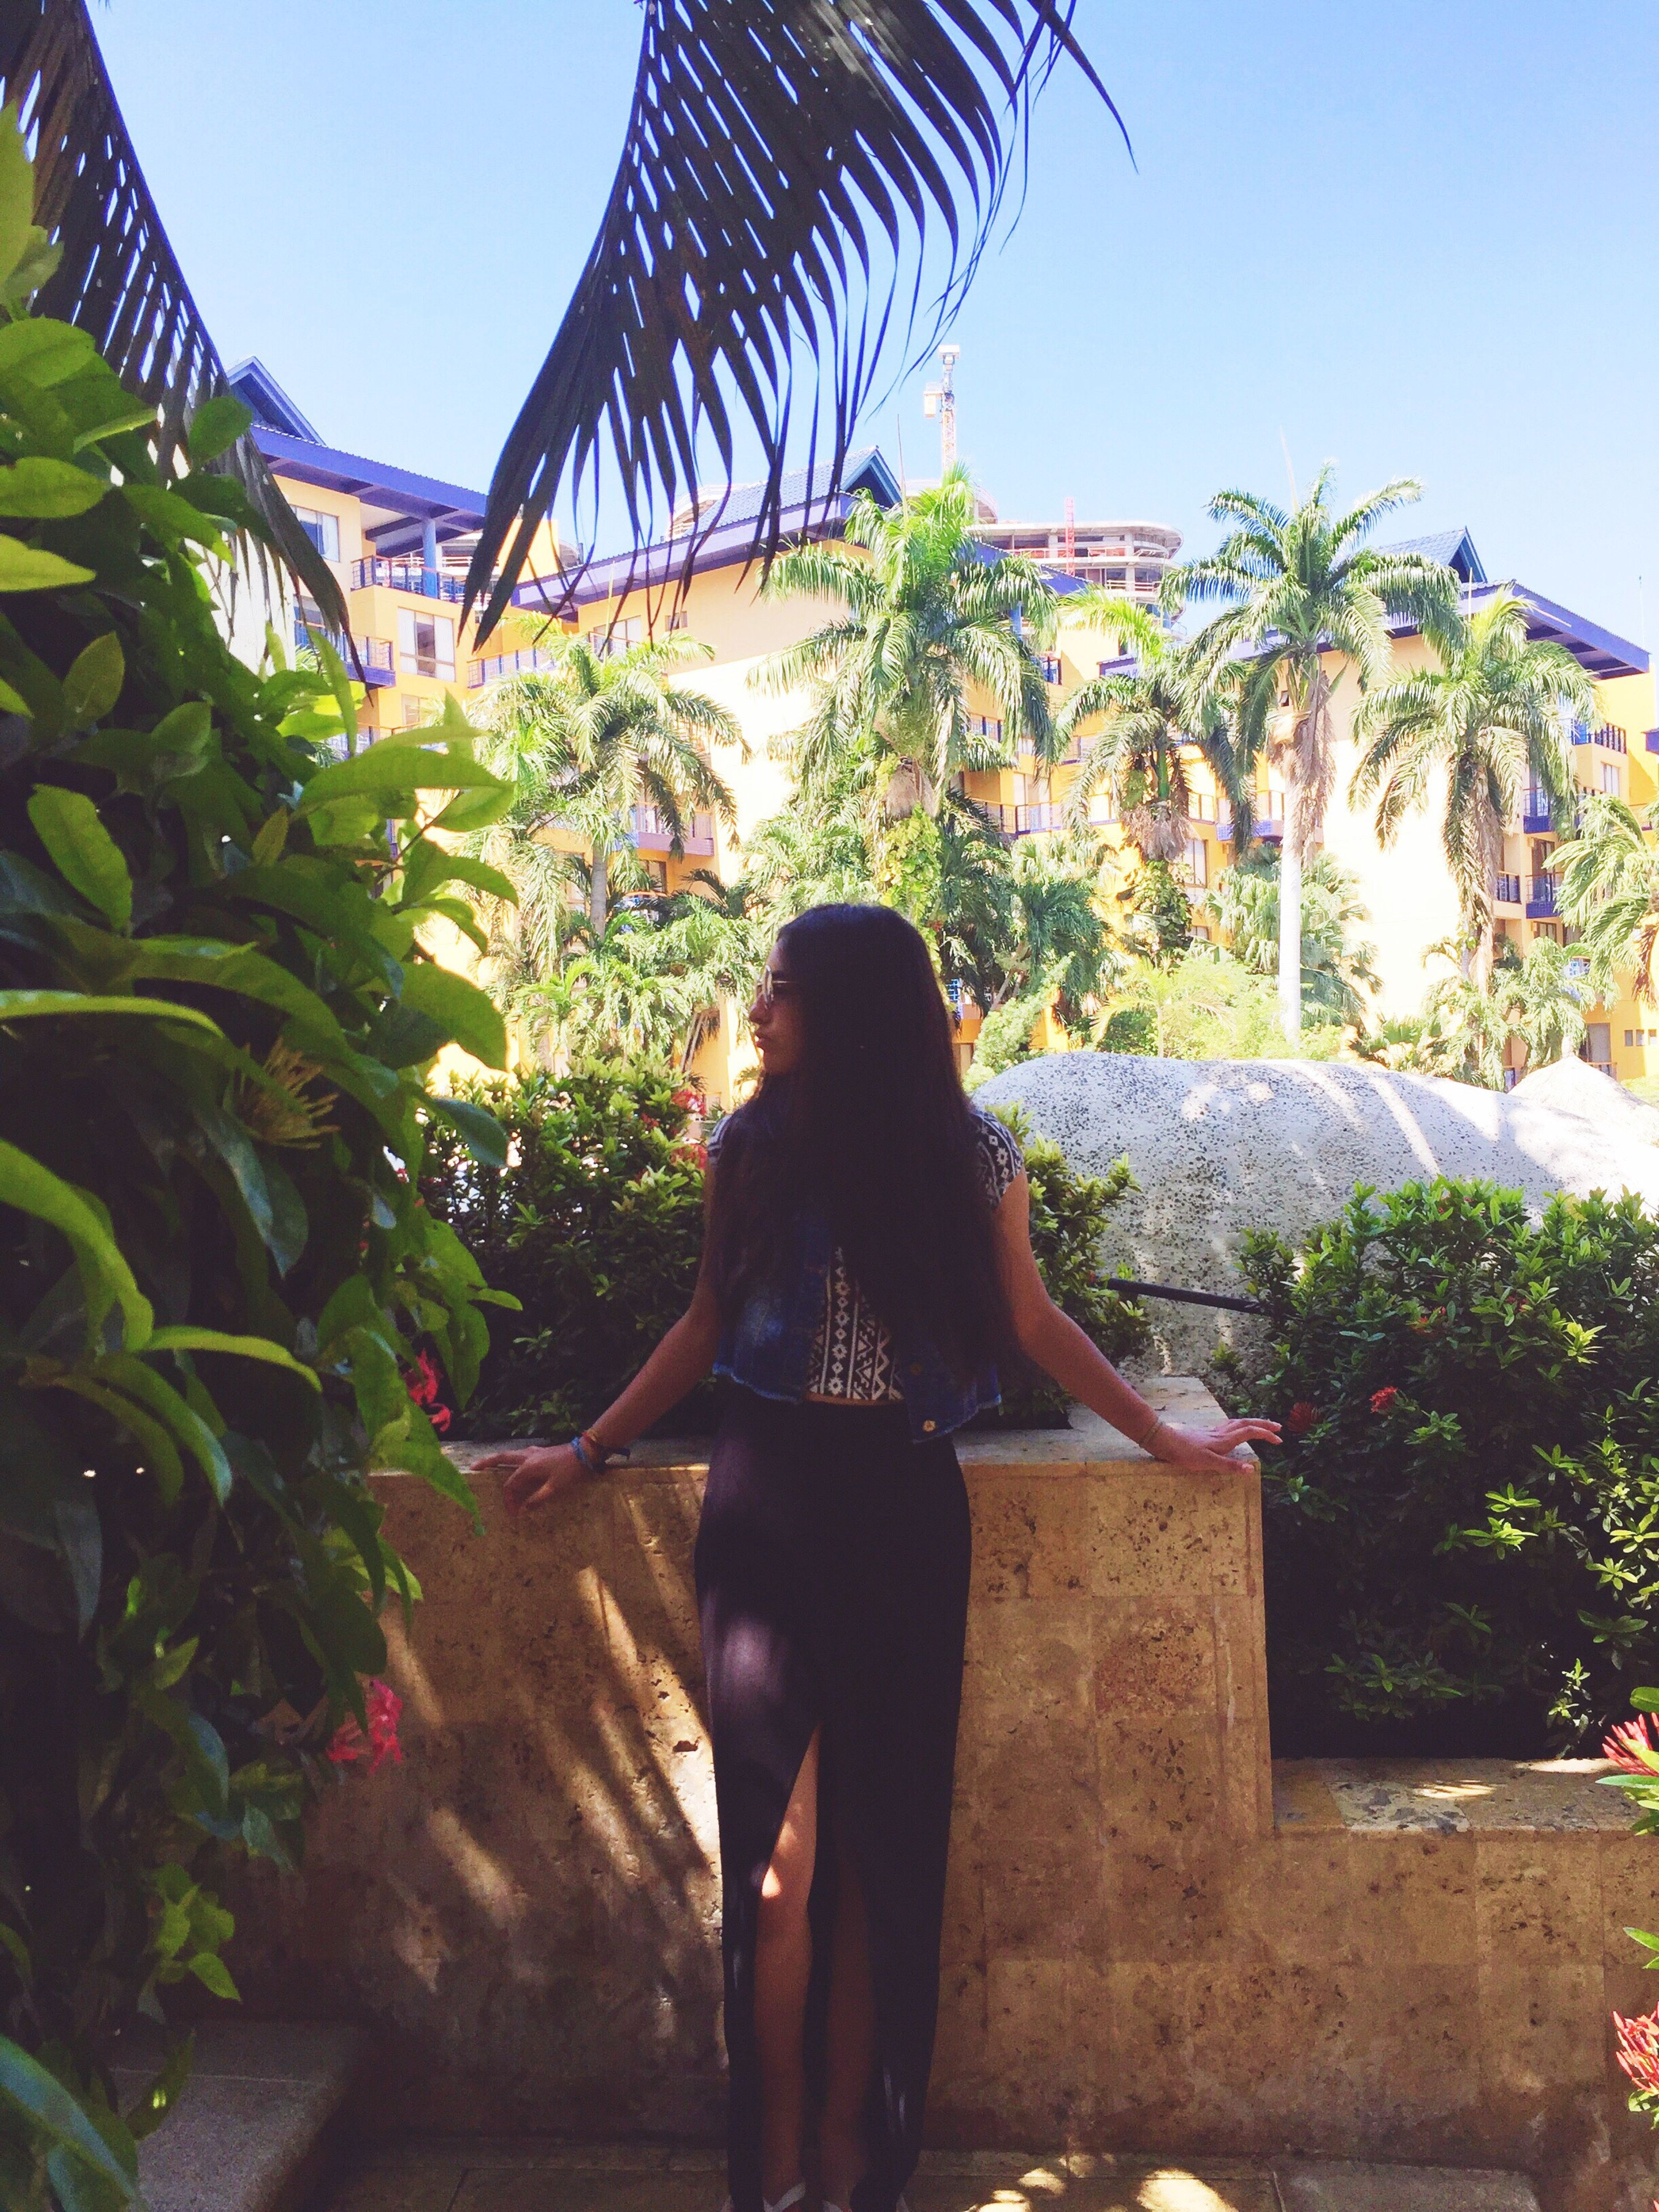 tree, lifestyles, clear sky, standing, leisure activity, full length, built structure, rear view, person, sunlight, building exterior, architecture, palm tree, casual clothing, young adult, three quarter length, young women, growth